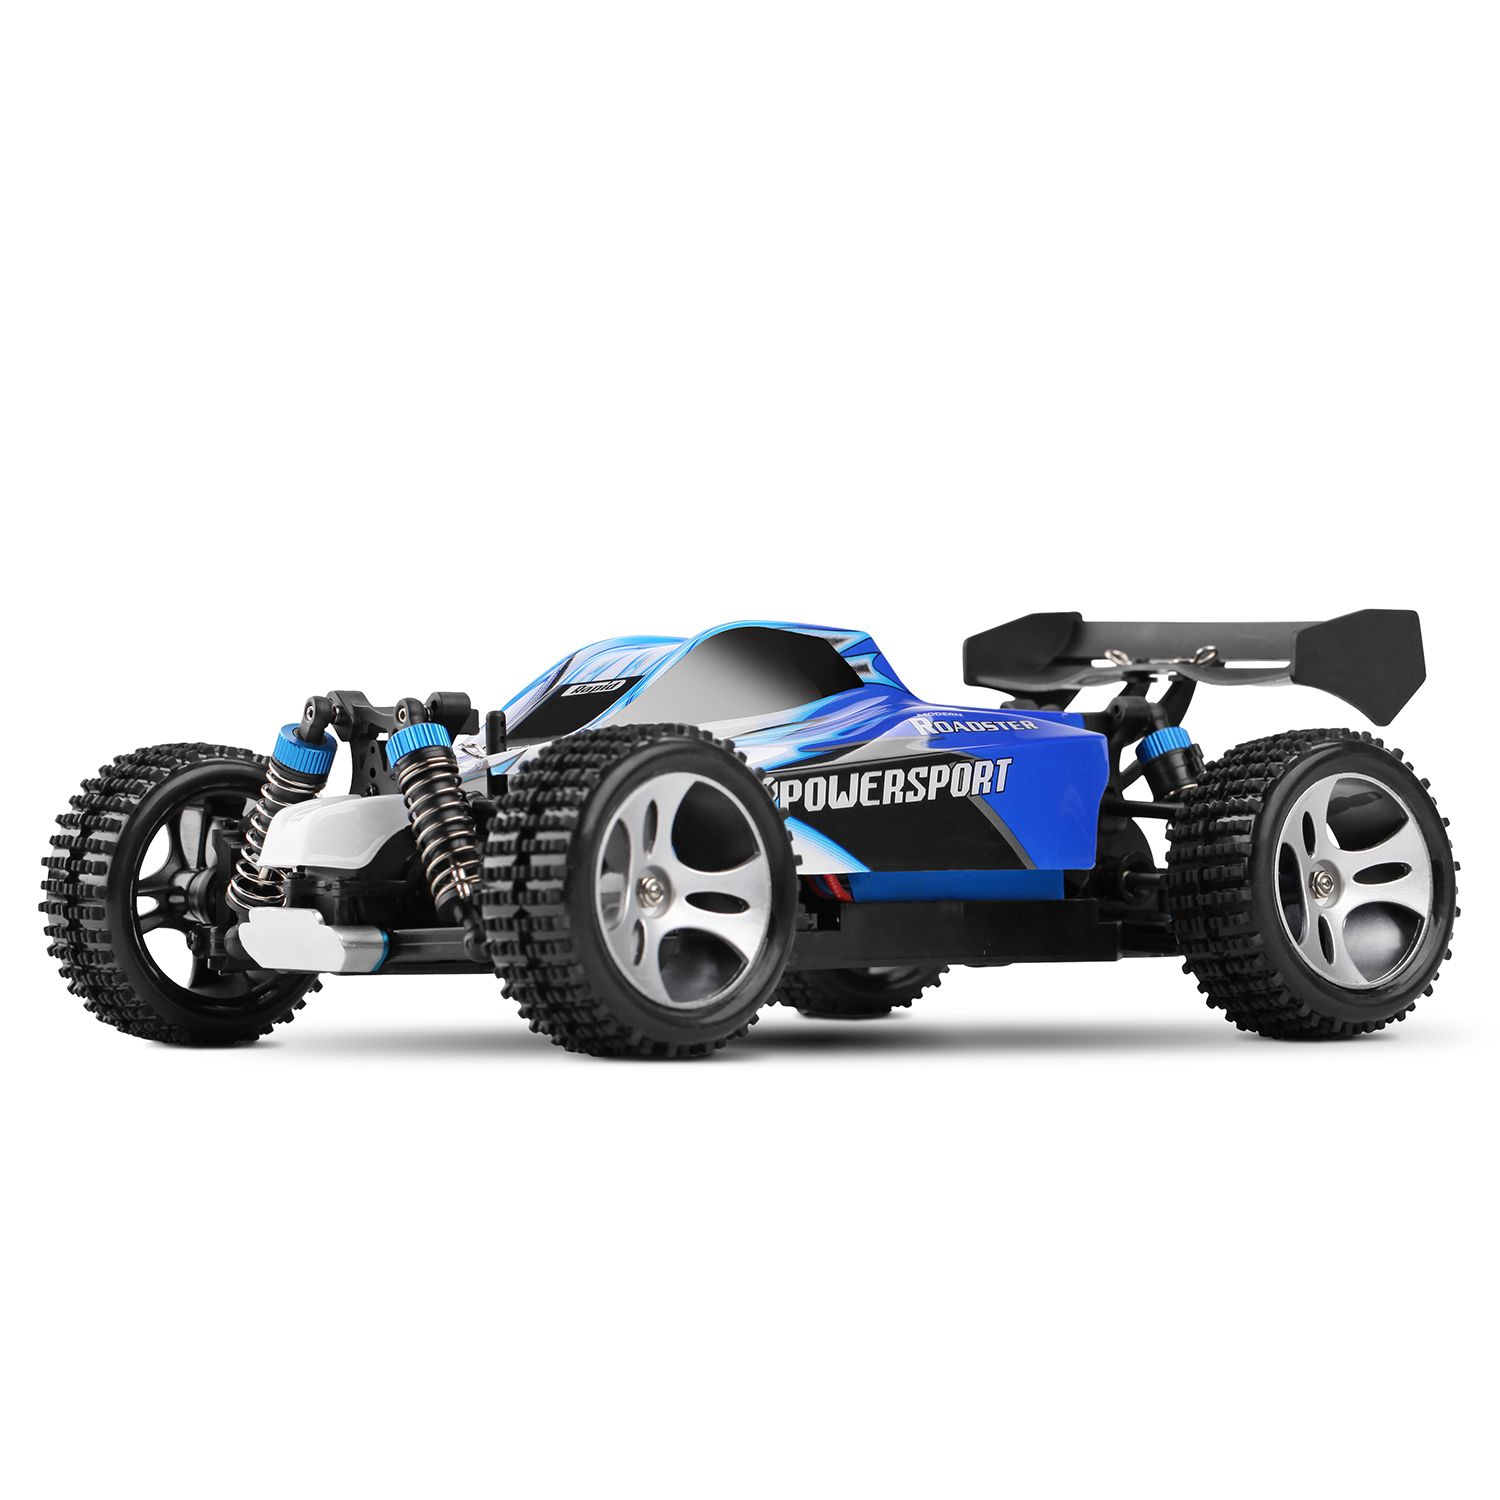 2018 New Wltoys A959 RC Car 1:18 Scale 2.4G 4WD RTR Off Road Buggy High Speed Racing Car Remote Control Truck 4 wheel Climber